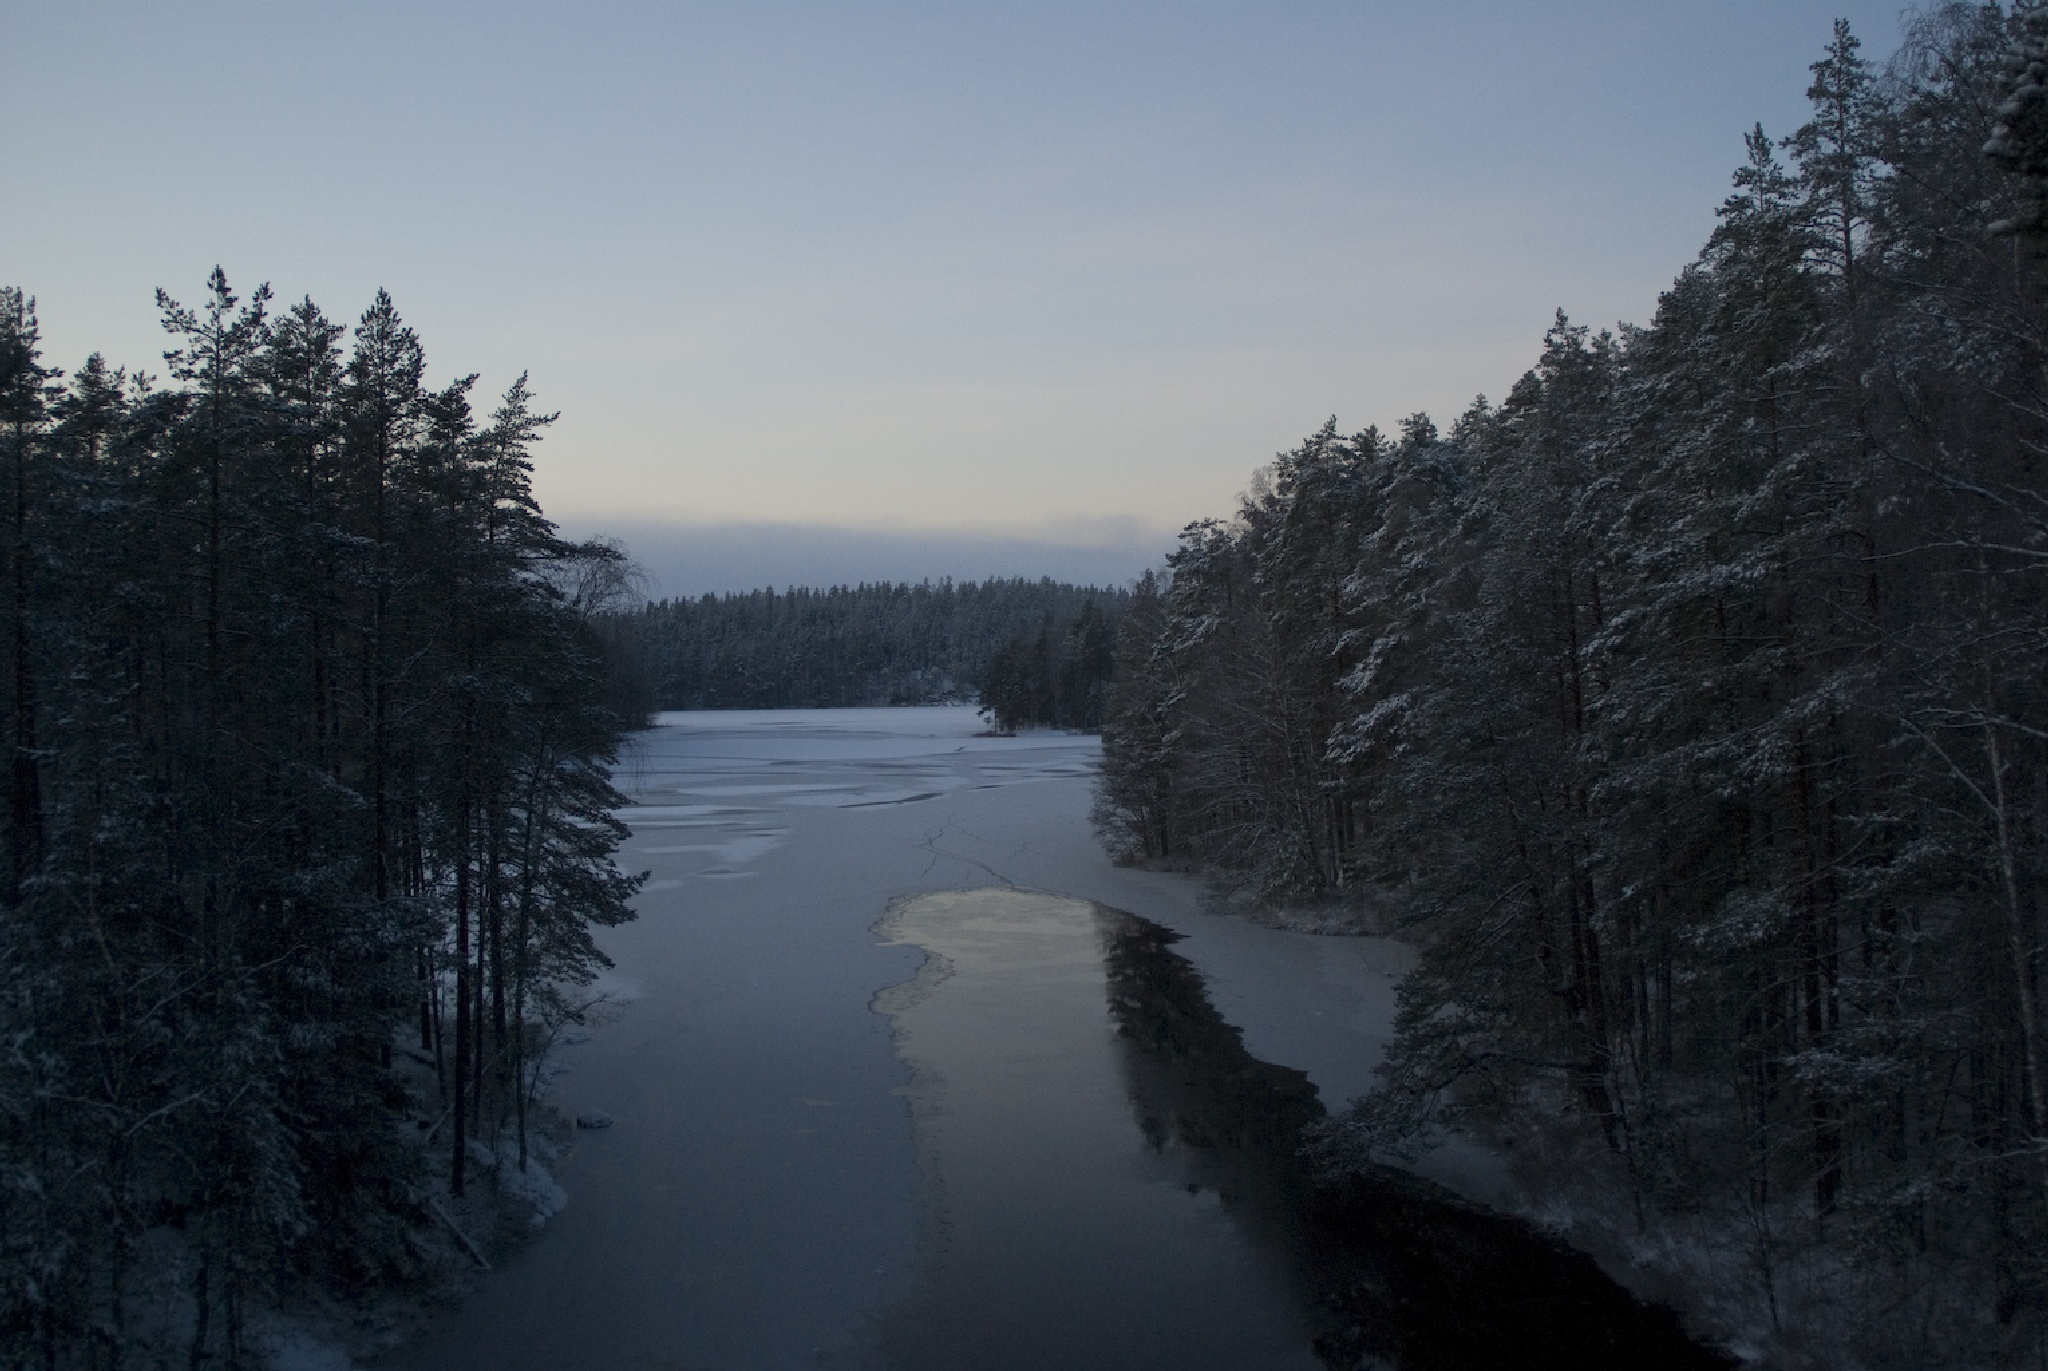 National park of Repovesi - Finland by mmr10000